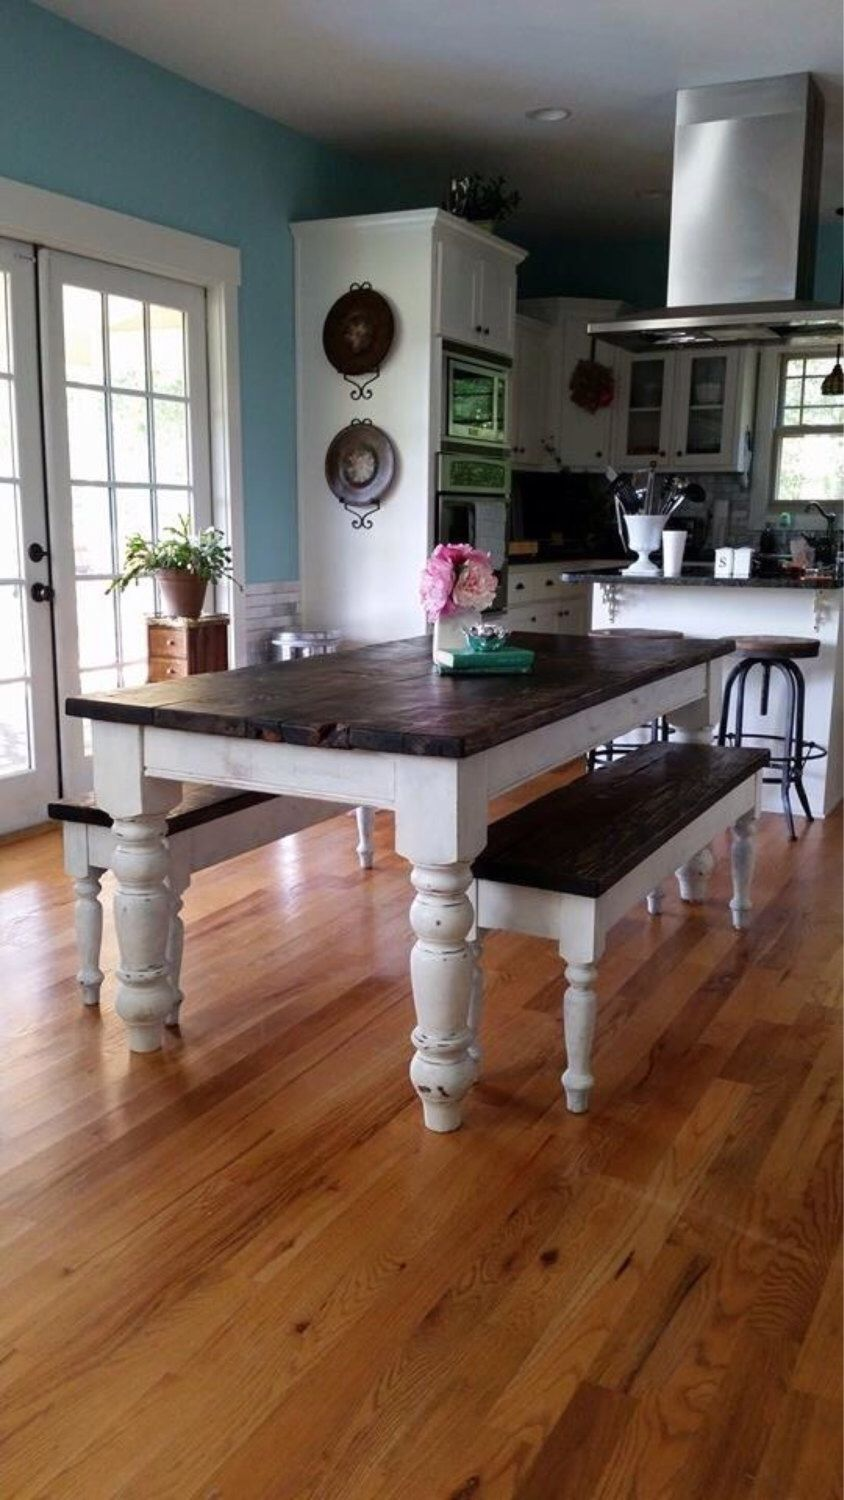 Pin By Rudy Maier On Diy In 2019 Farmhouse Table With